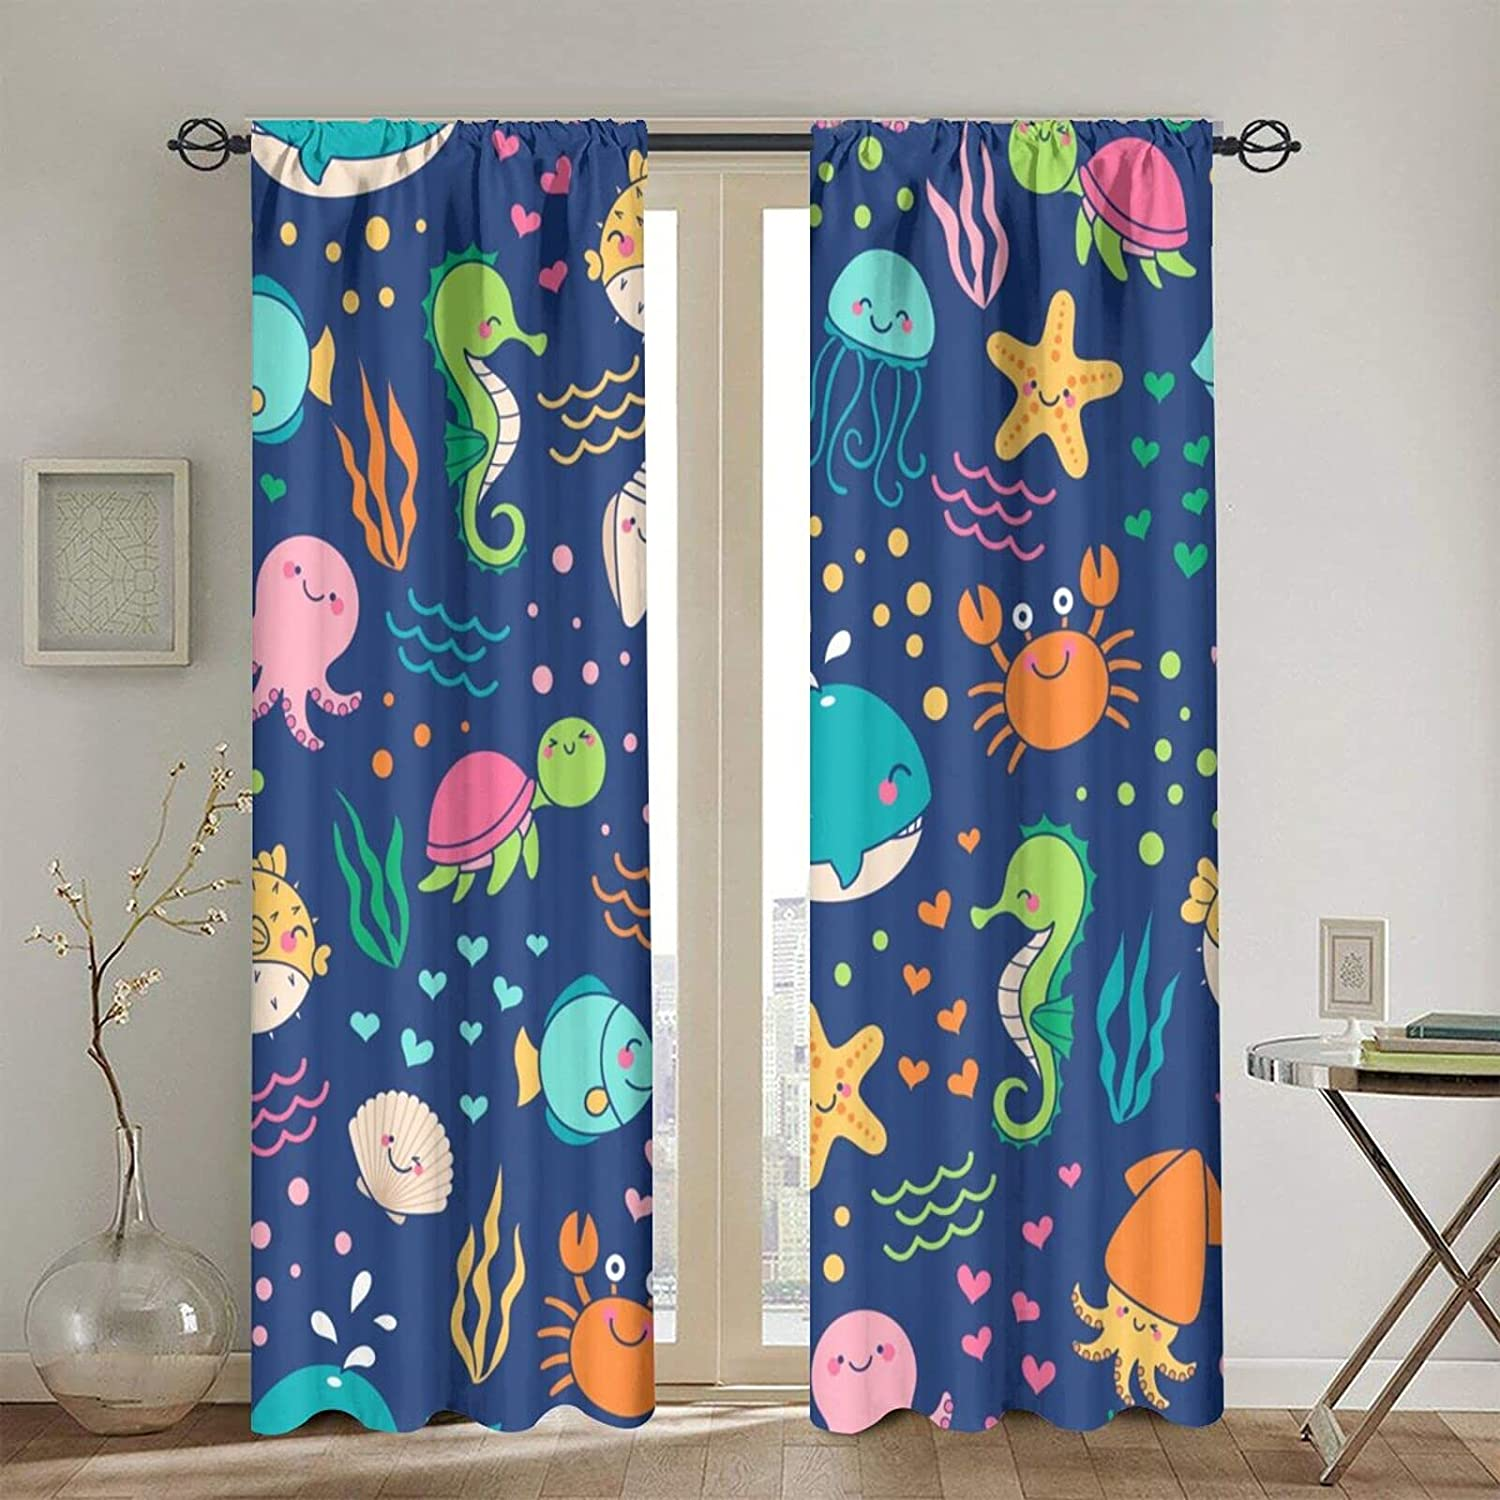 Blackout Curtains for Girls Boys sold out Life Sea Sacramento Mall Cute Colorful Cartoon